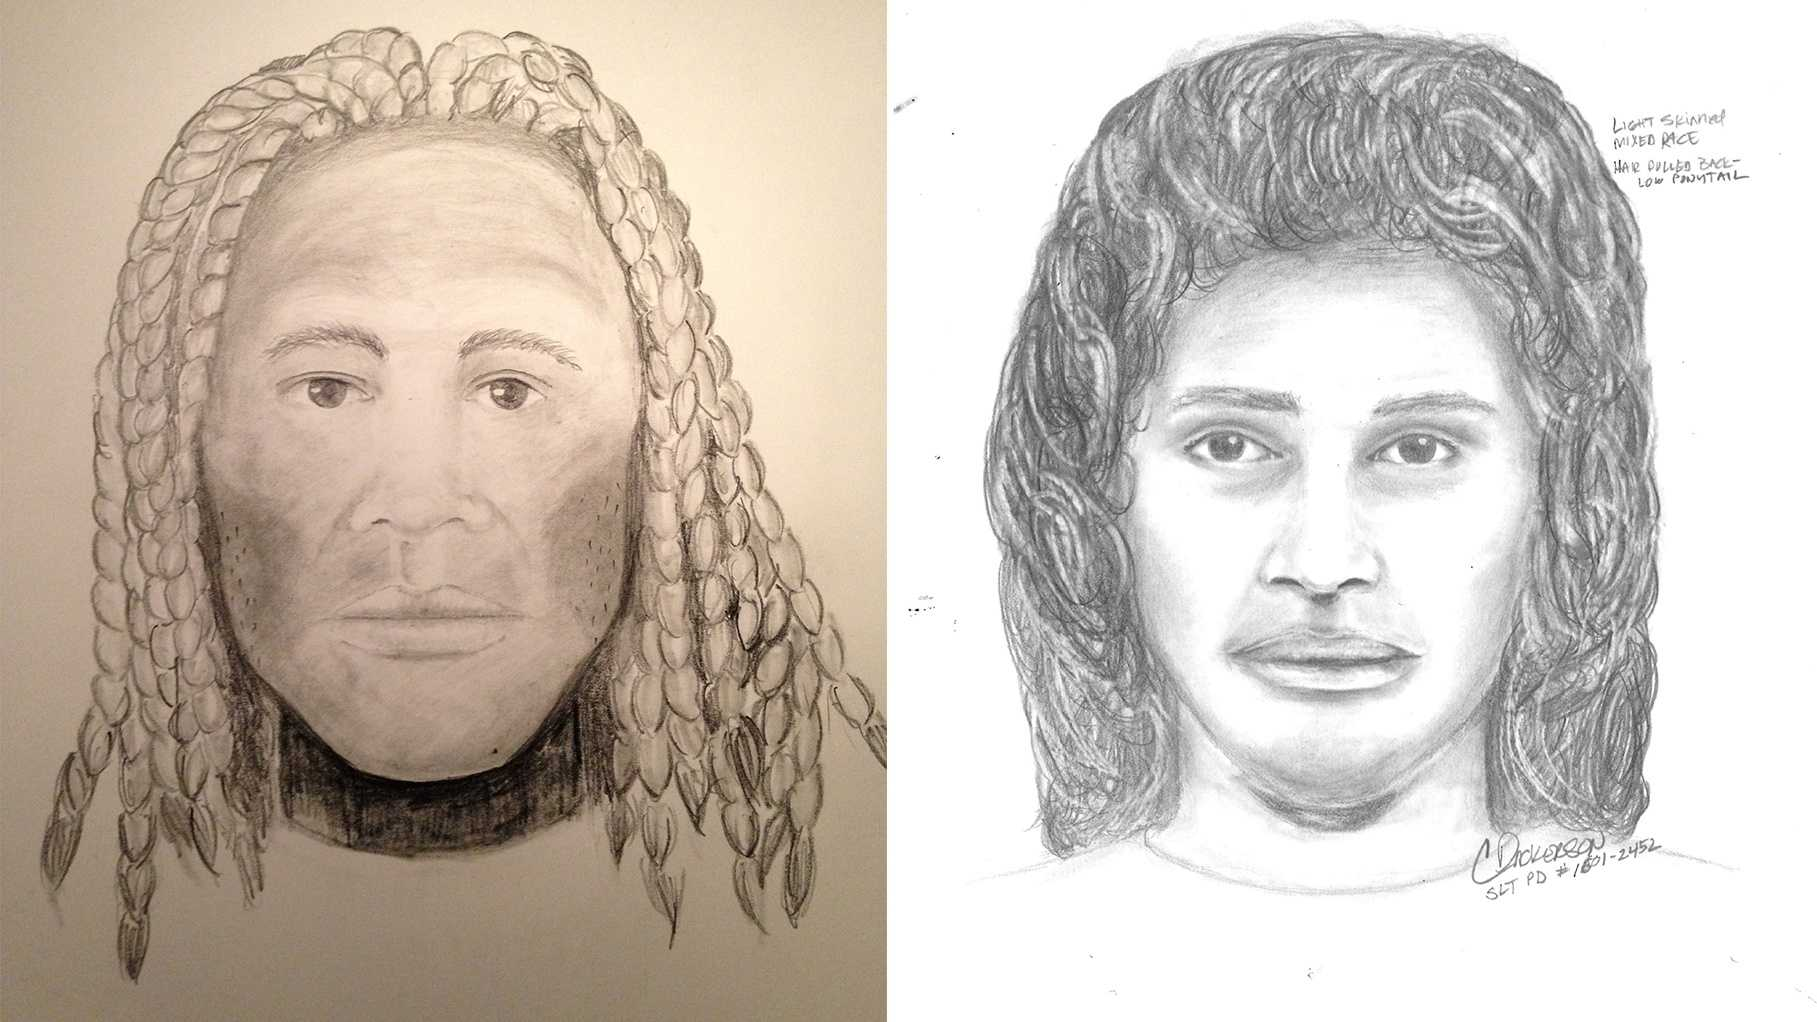 South Lake Tahoe police are searching for suspect number one (left) and suspect number two (right) in connection with the murder of an Amador County man Saturday evening.